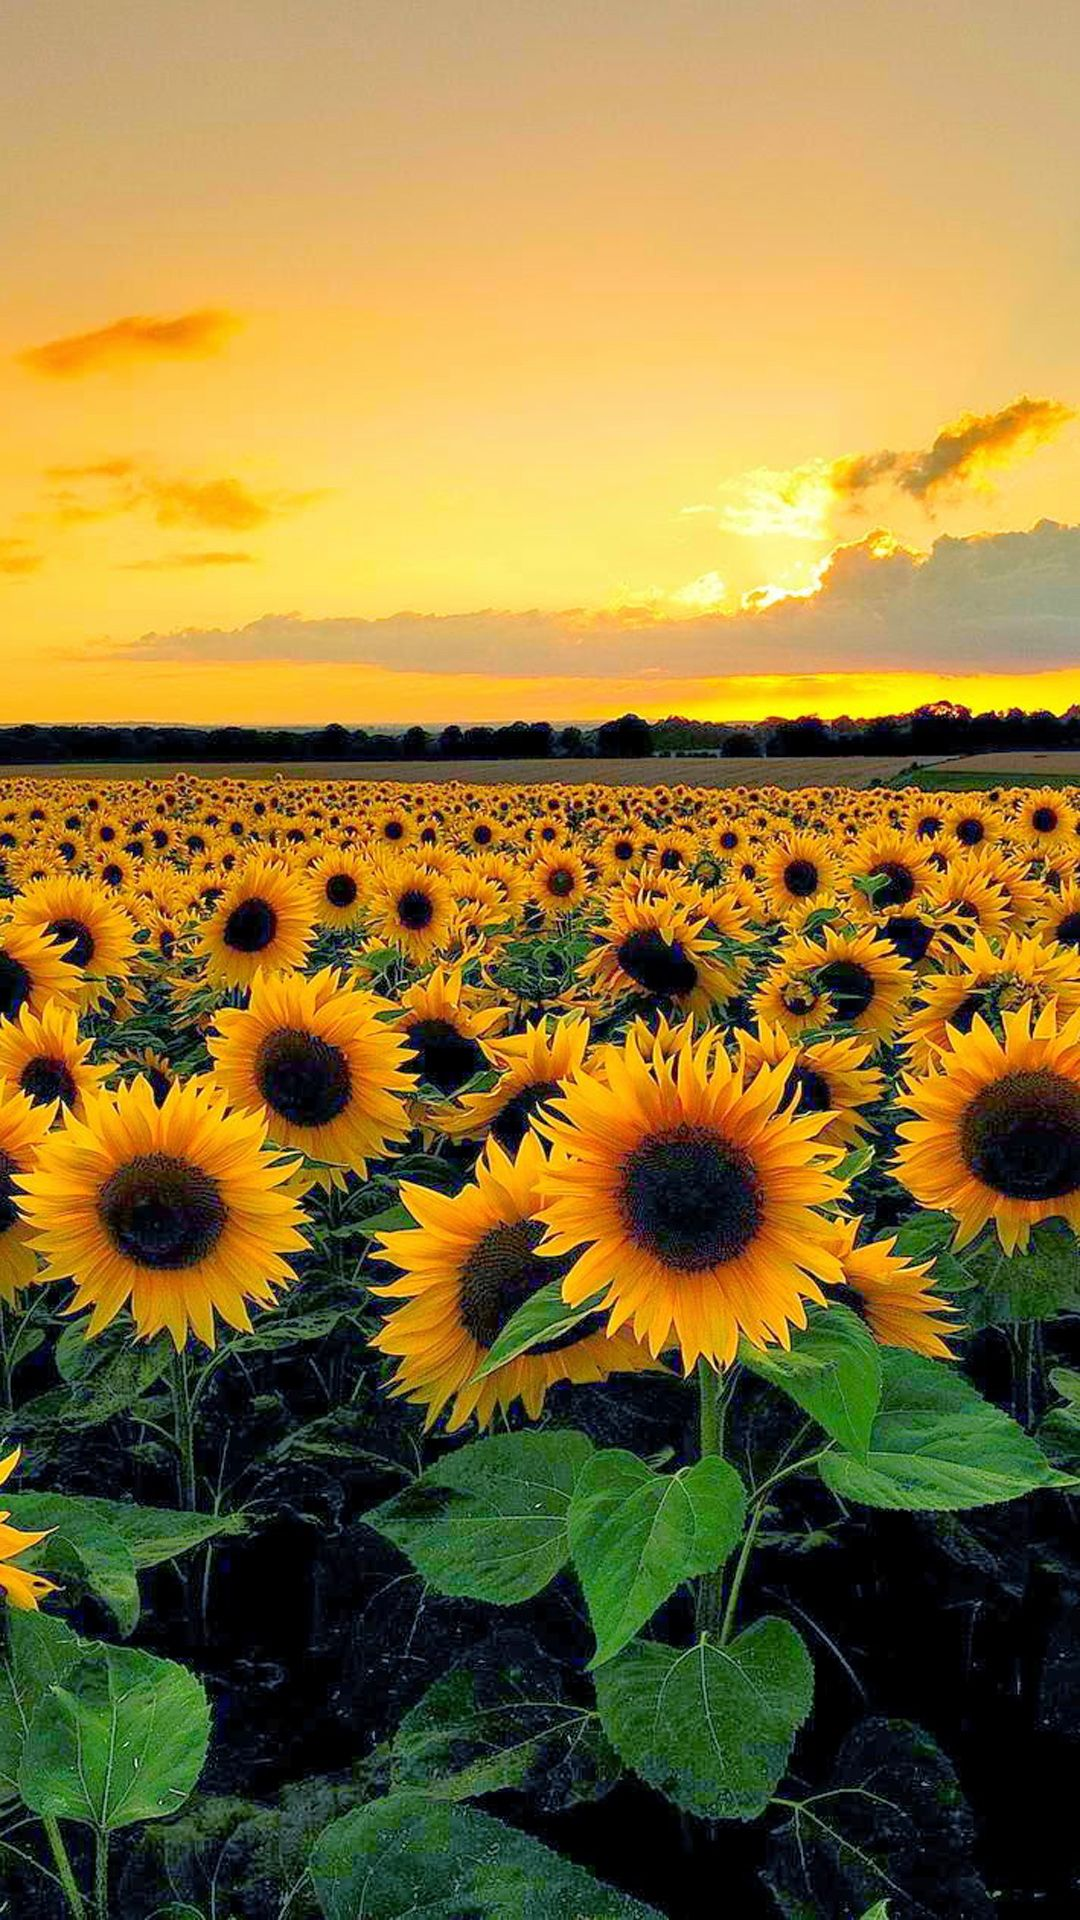 sunset view from sunflower field | craft ideas | pinterest